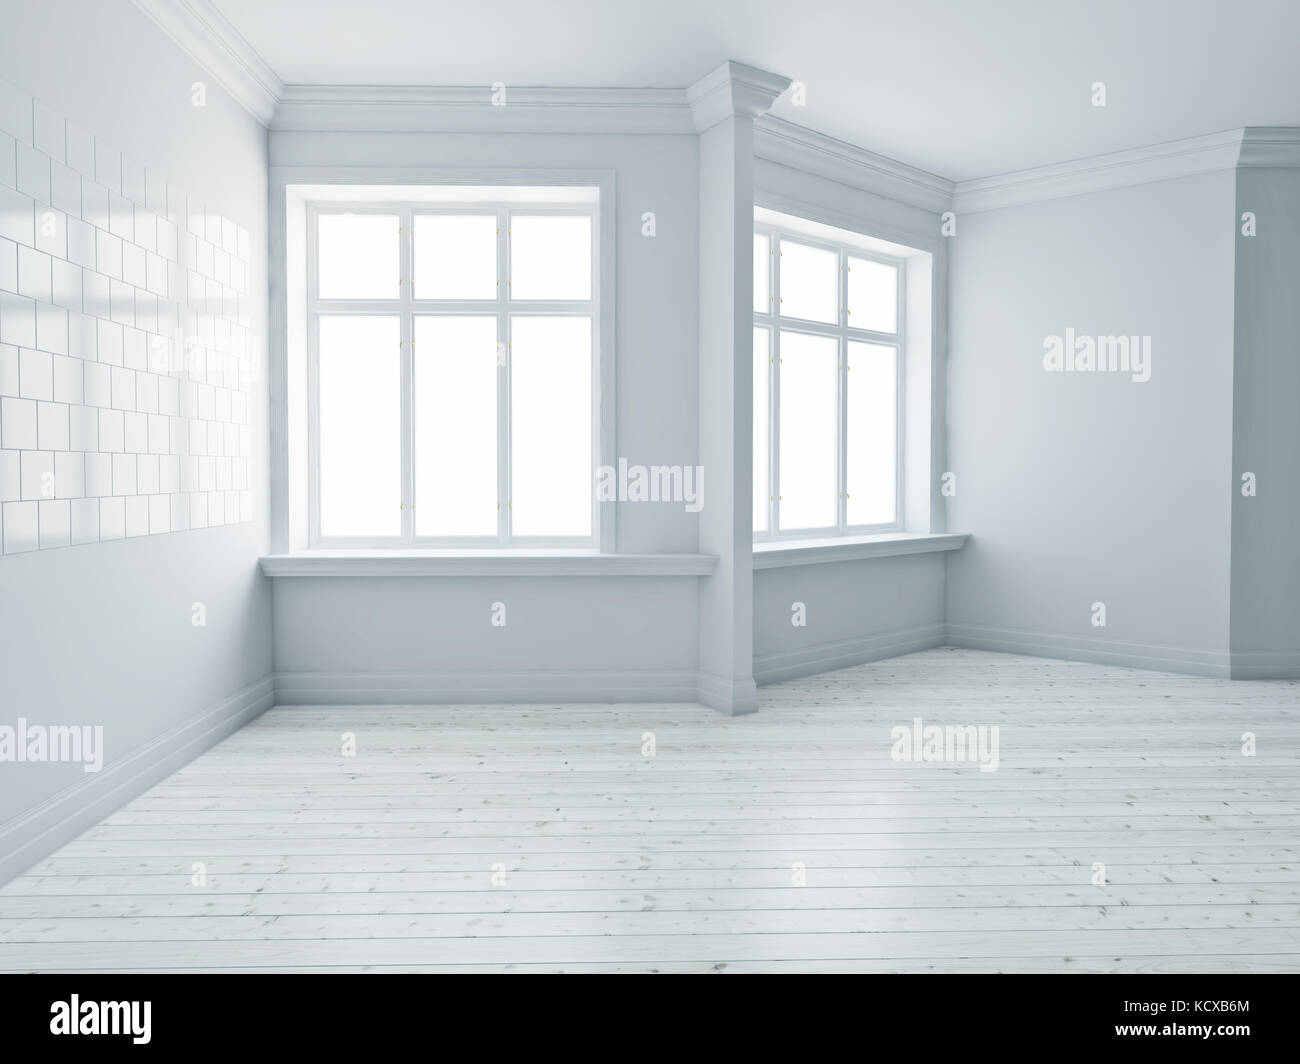 The Modern Empty Interior Rooms 3d Rendering Stock Photo Alamy